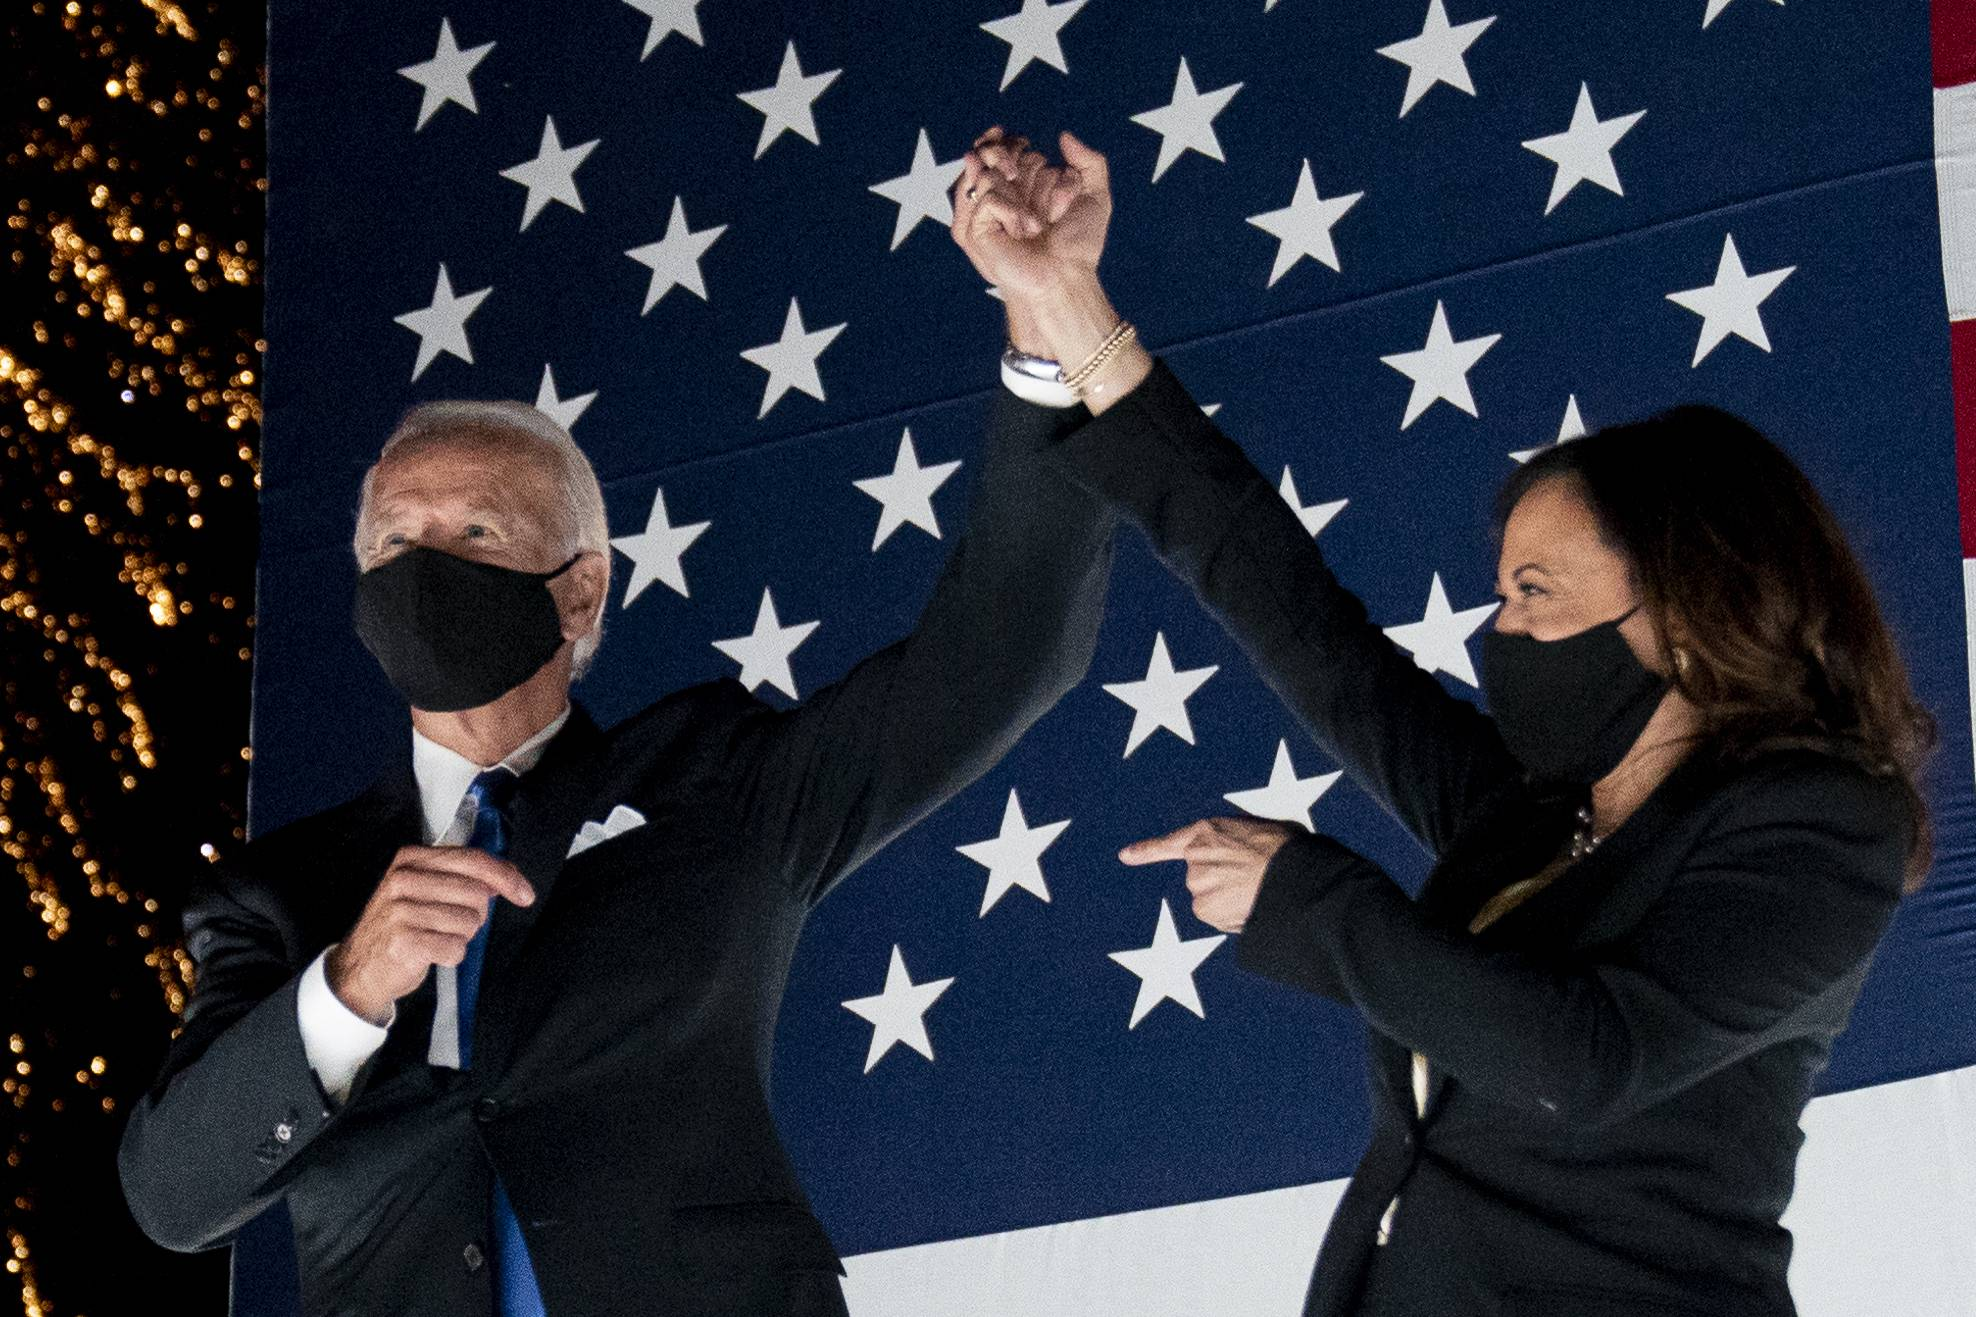 Democratic presidential candidate former Vice President Joe Biden and his running mate, Sen. Kamala Harris, watch fireworks during the fourth day of the Democratic National Convention on Thursday in Wilmington, Delaware.   AP